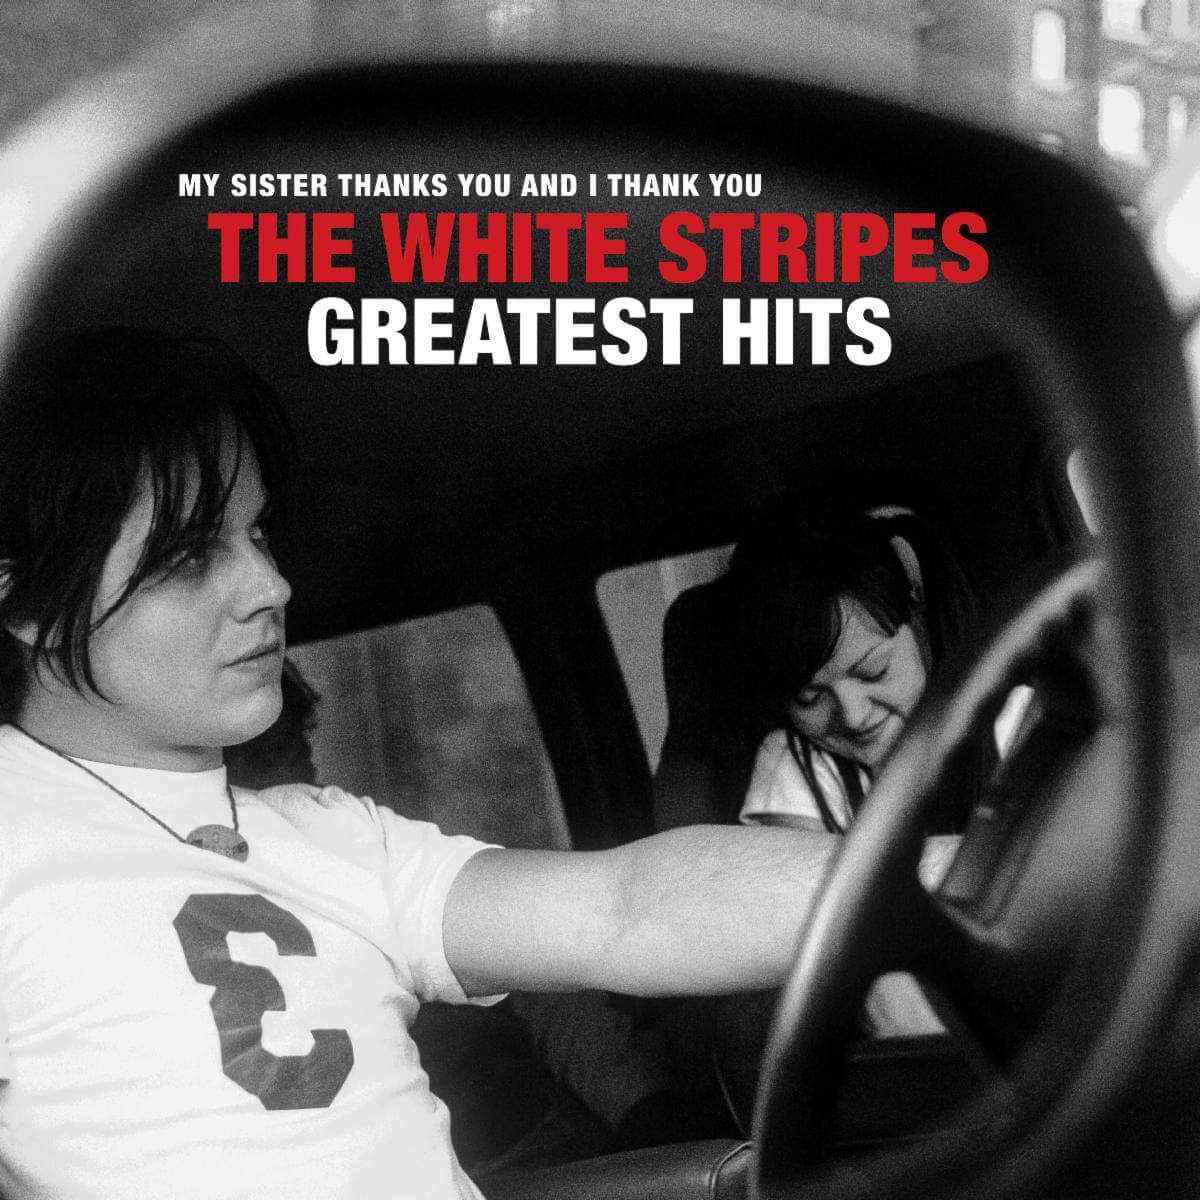 The White Stripes share Greatest Hits track list, the duo's full-length comes out on December 4, via Third Man/Columbia Records